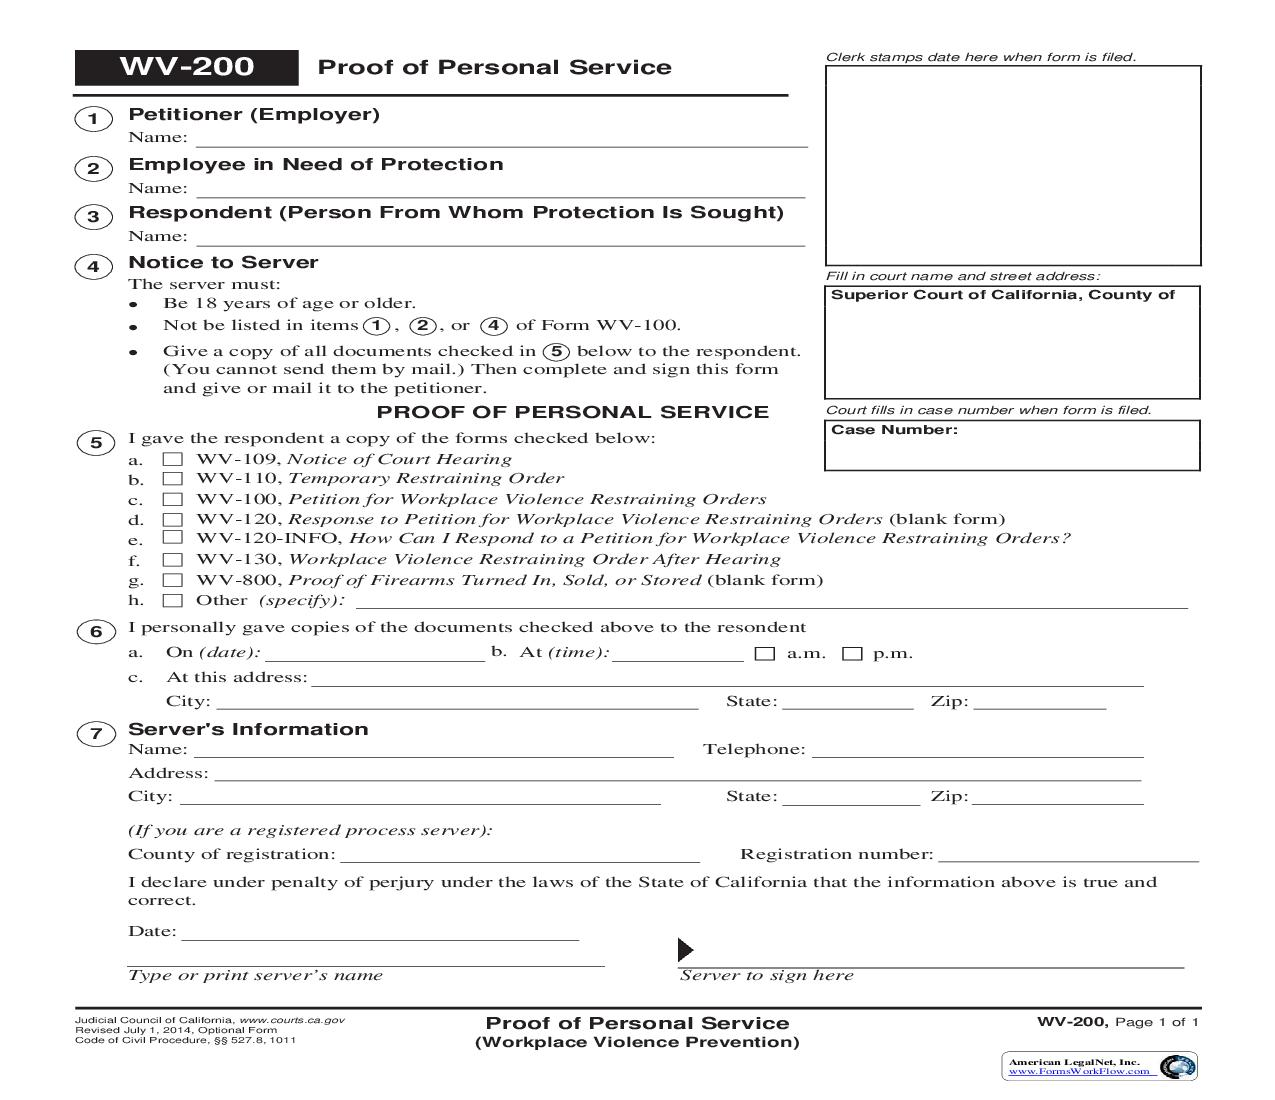 Proof Of Personal Service (Workplace Violence Prevention) {WV-200}   Pdf Fpdf Doc Docx   California